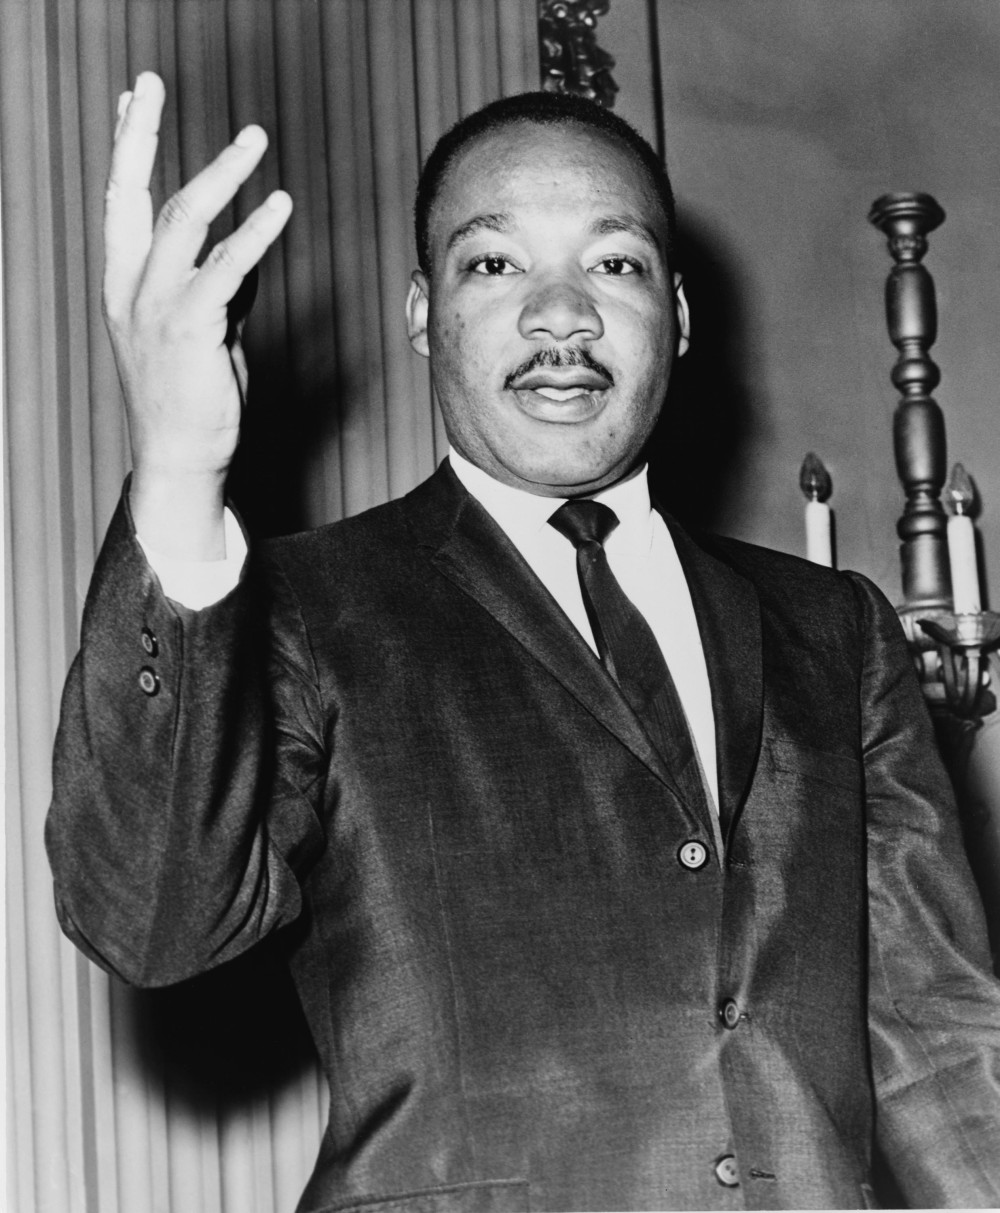 Martin_Luther_King_Jr_NYWTS (1)